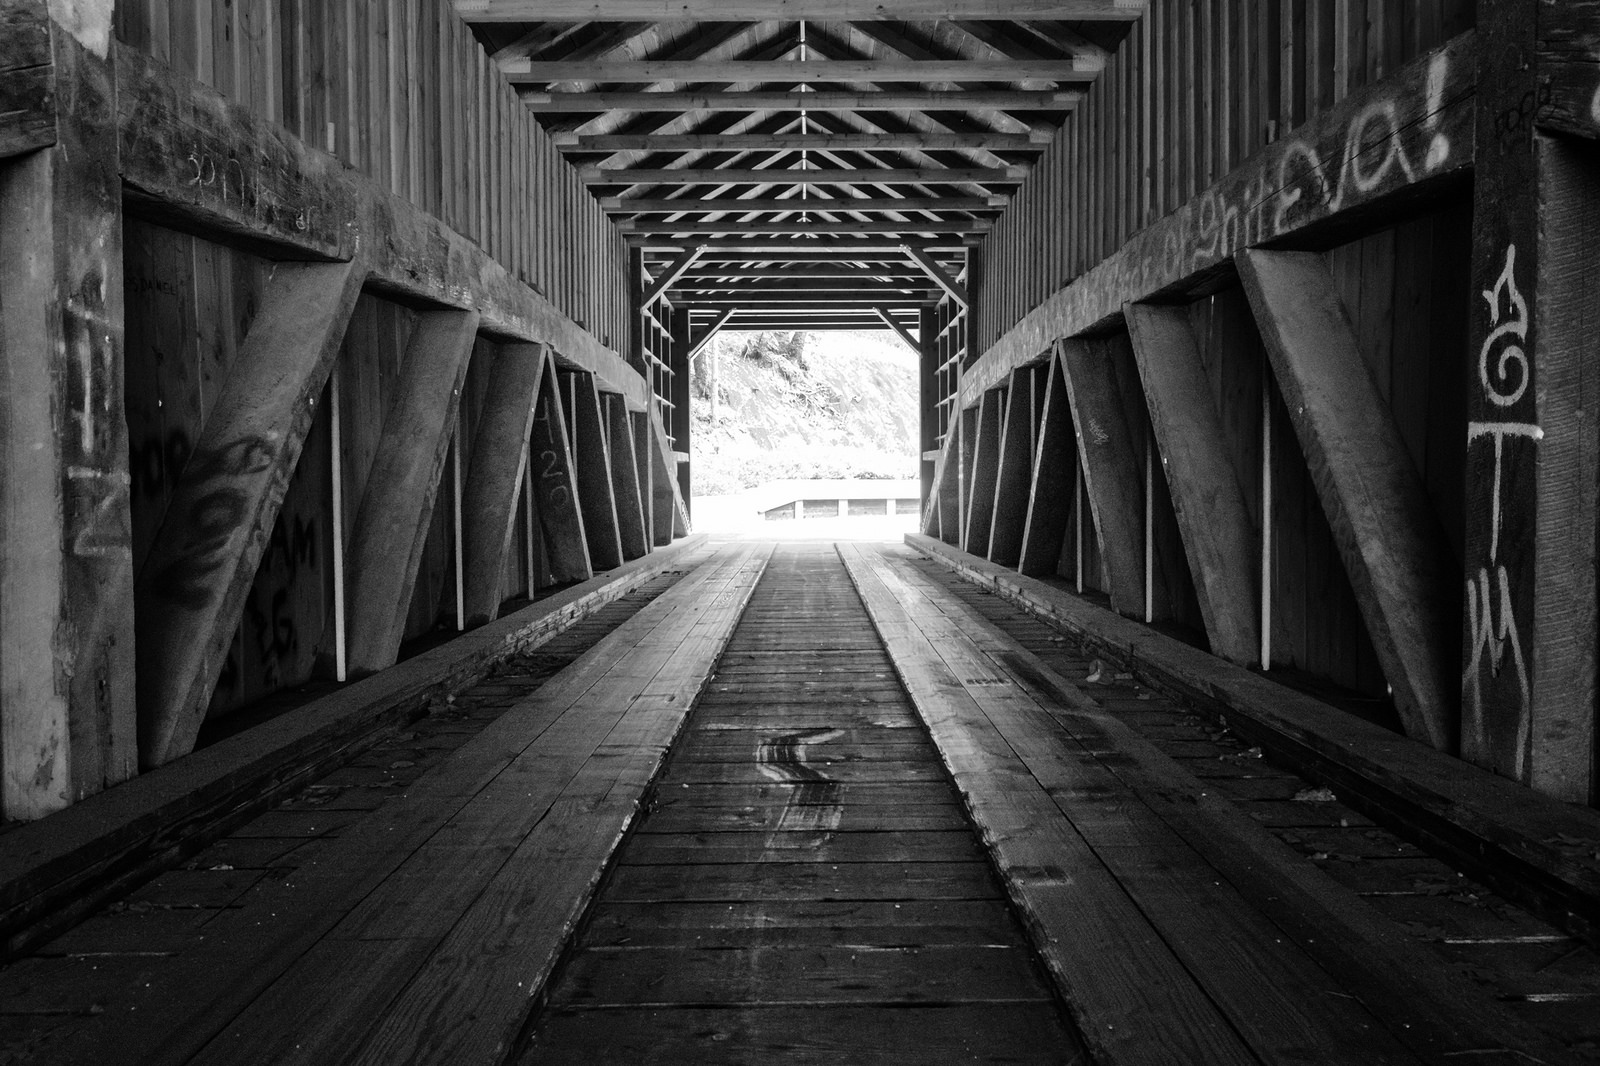 The rebuilt bridge uses some of the same wood that was used in the original bridge.